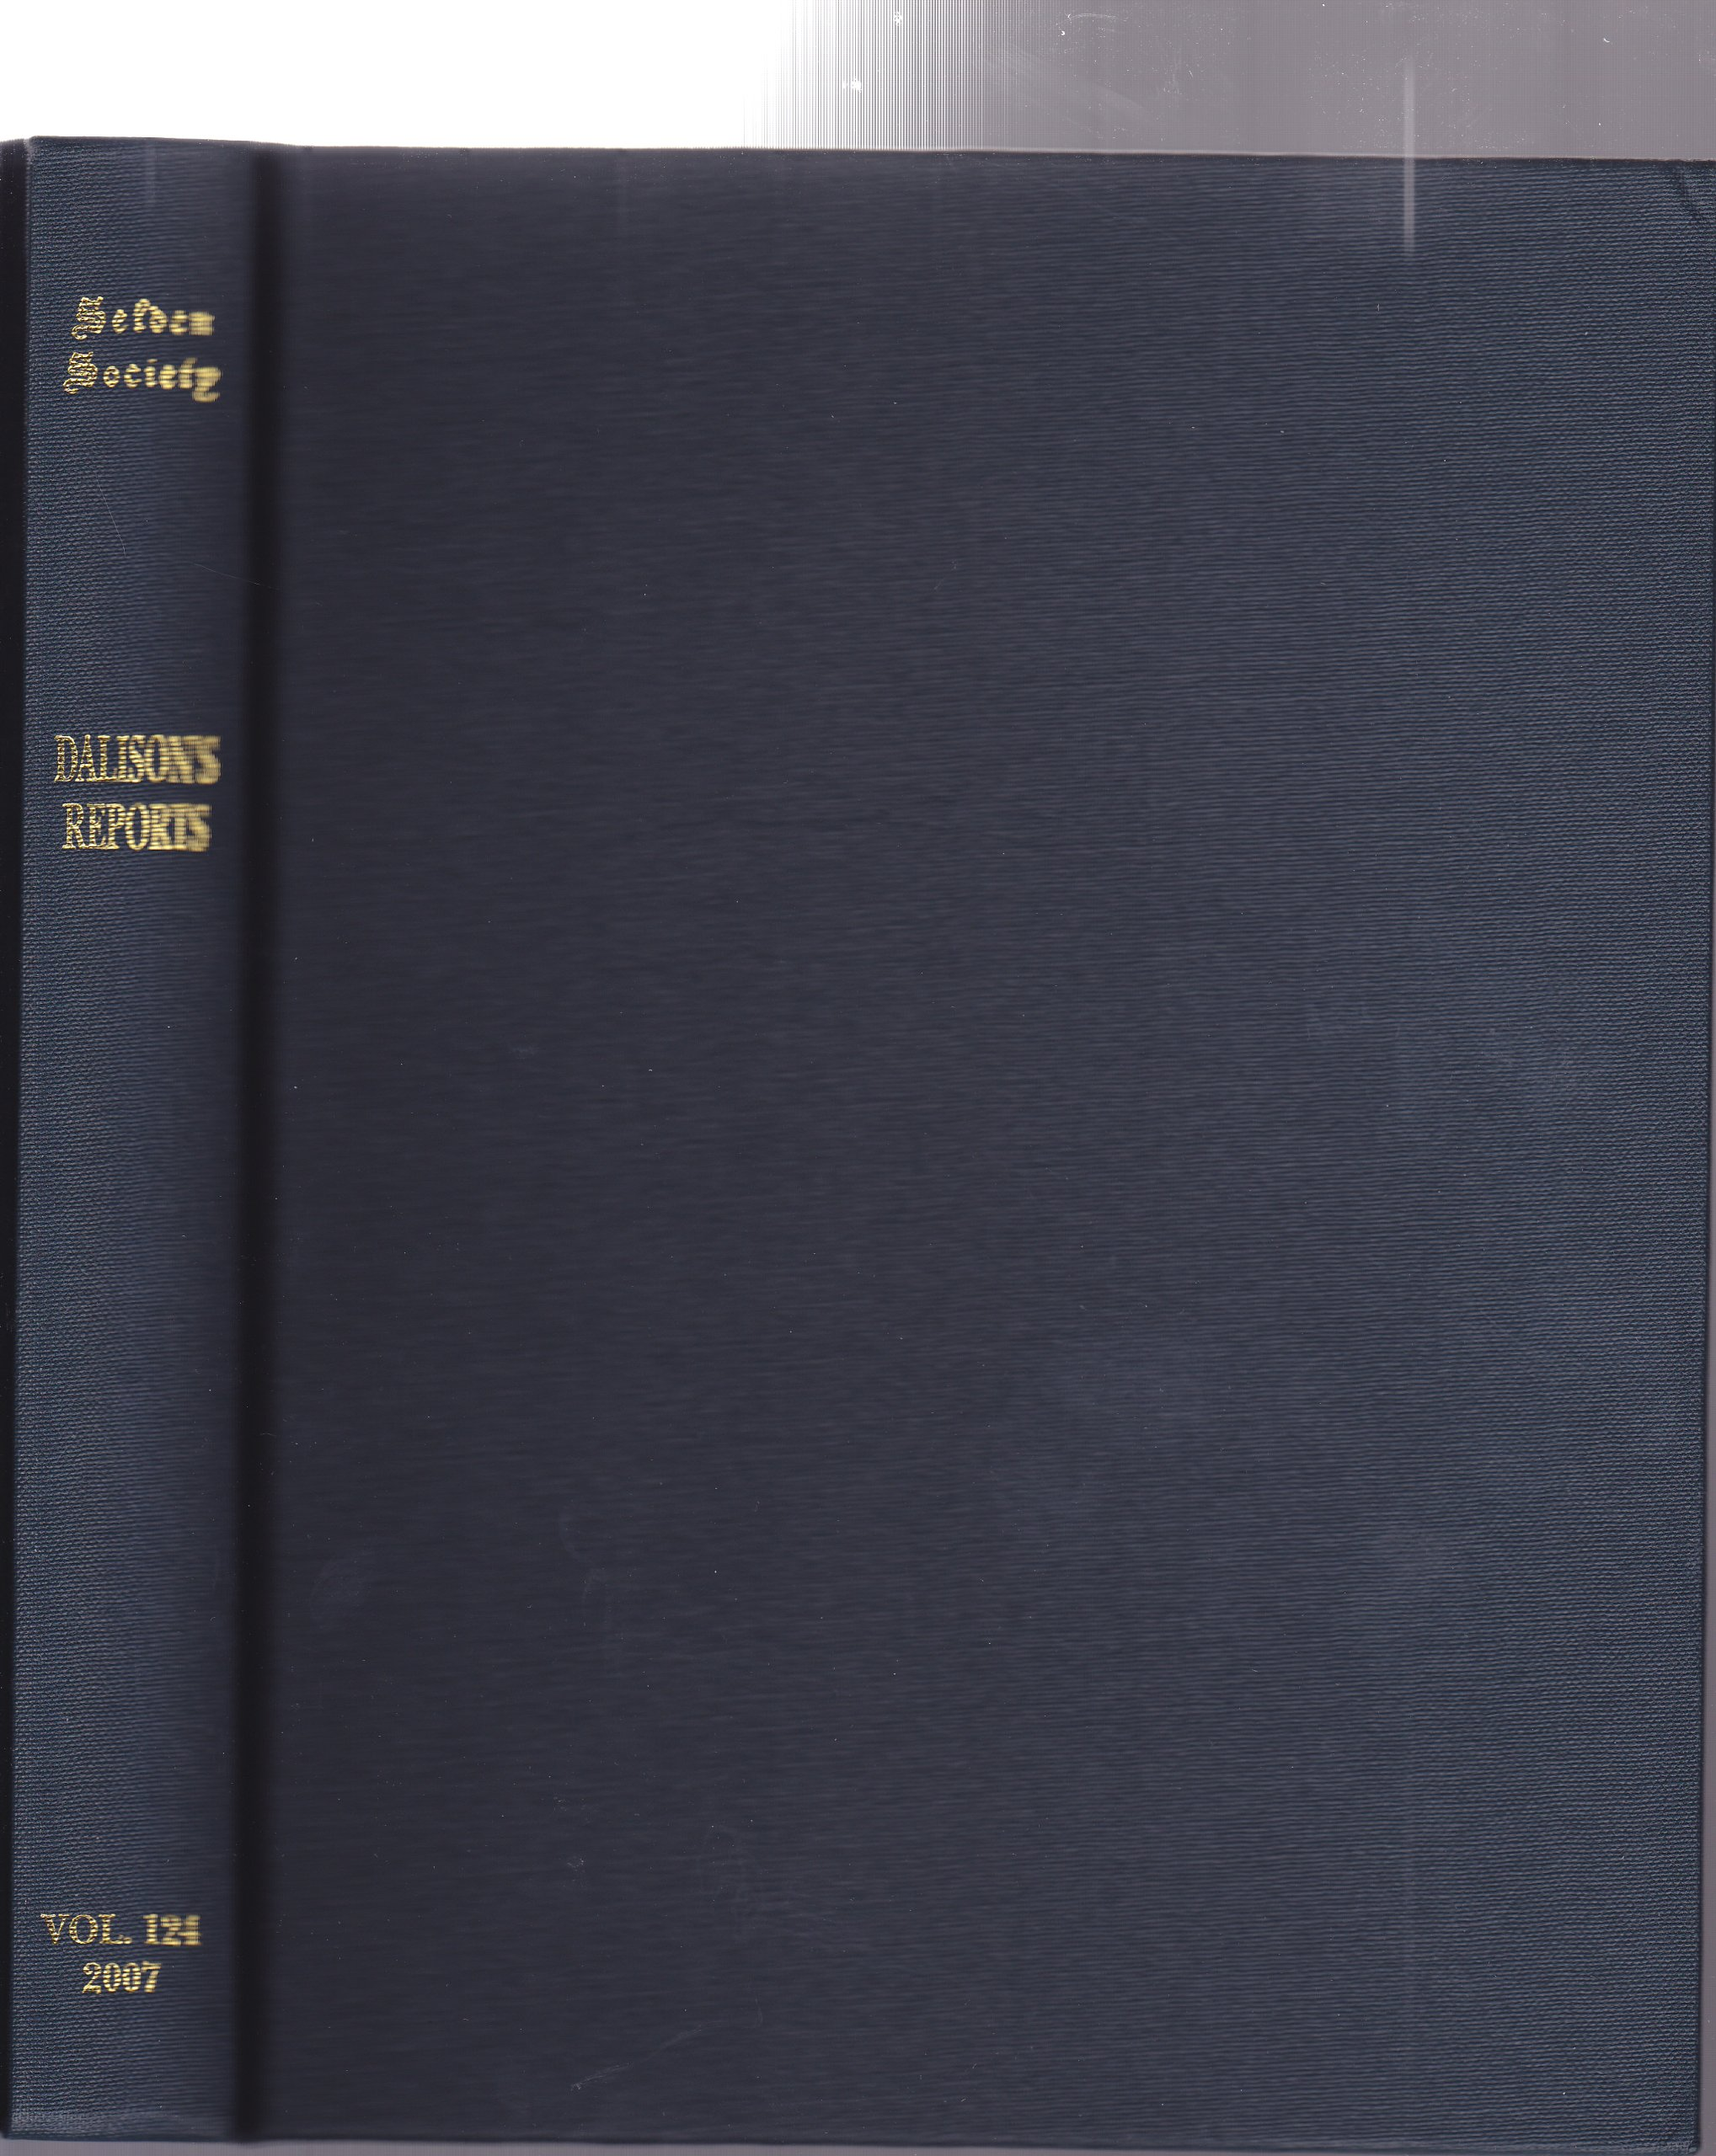 Download The Reports of William Dalison, 1552-1558: Edited for the Selden Society by Sir John Baker (Publications of the Selden Society) pdf epub